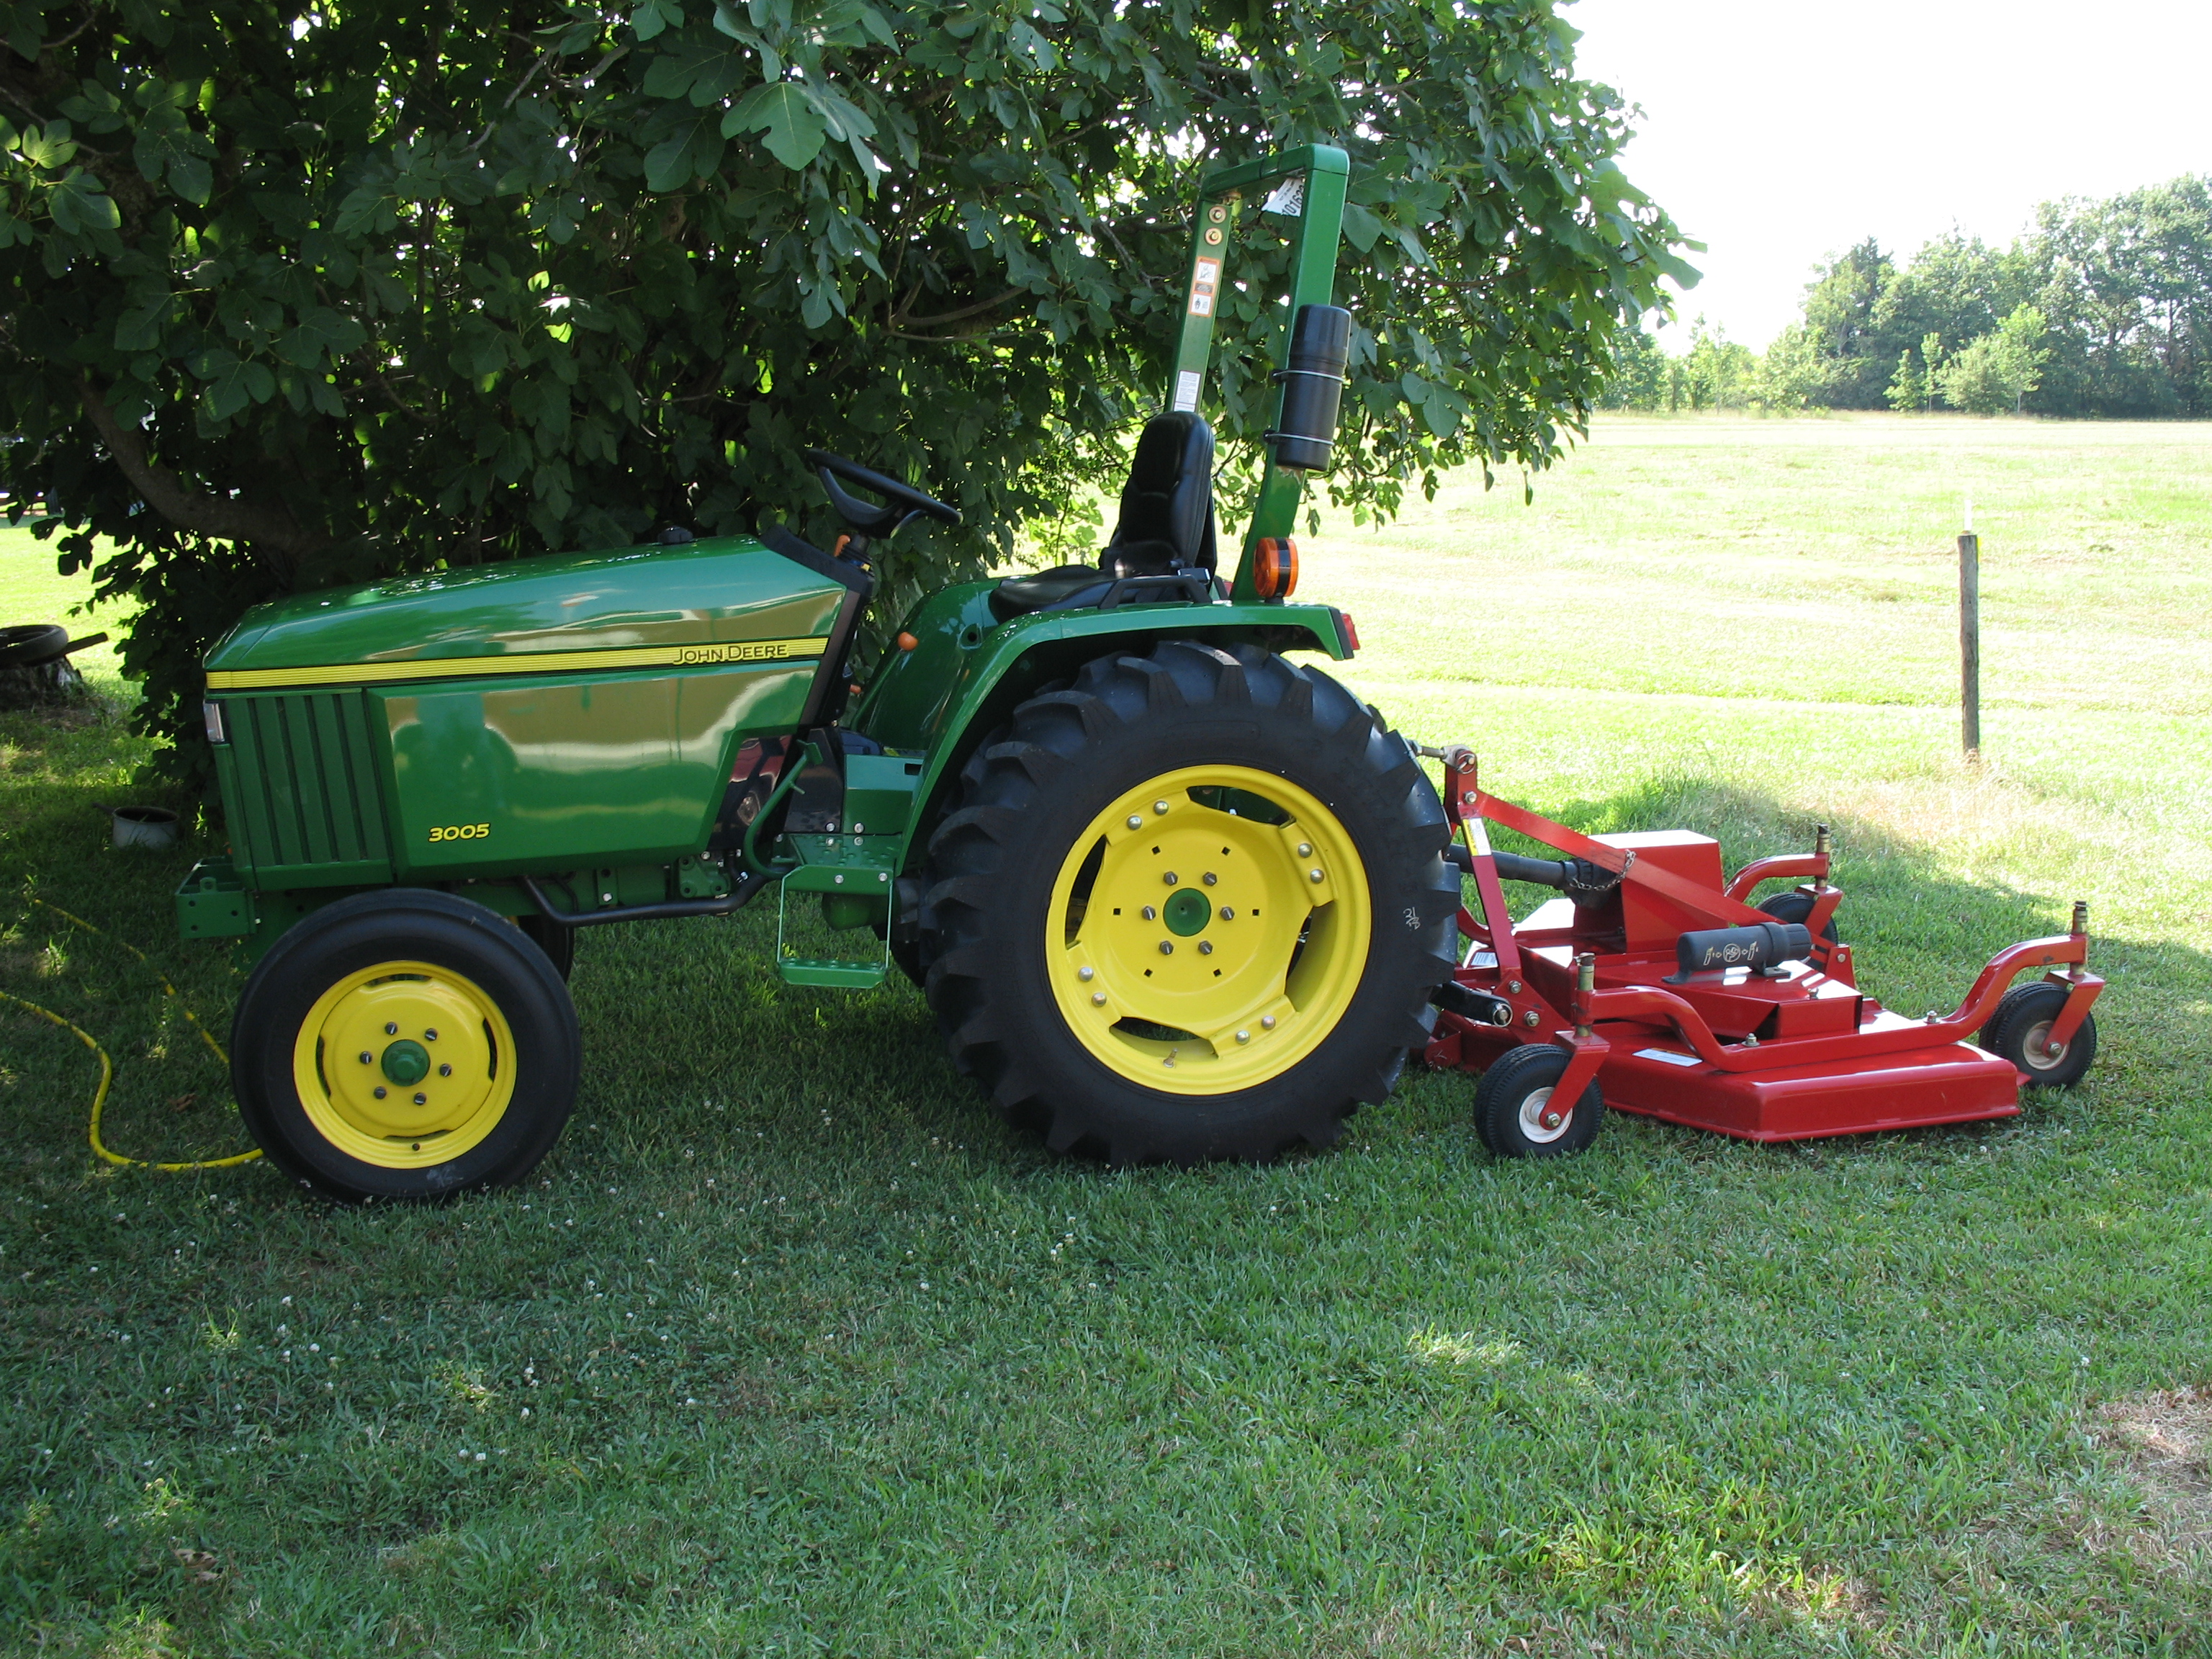 John Deere Tractor 3005 Wiring Diagram Descargar Sendblaster Pro 2 Harness Find Best Value And Selection For Your 300 Search On Ebay